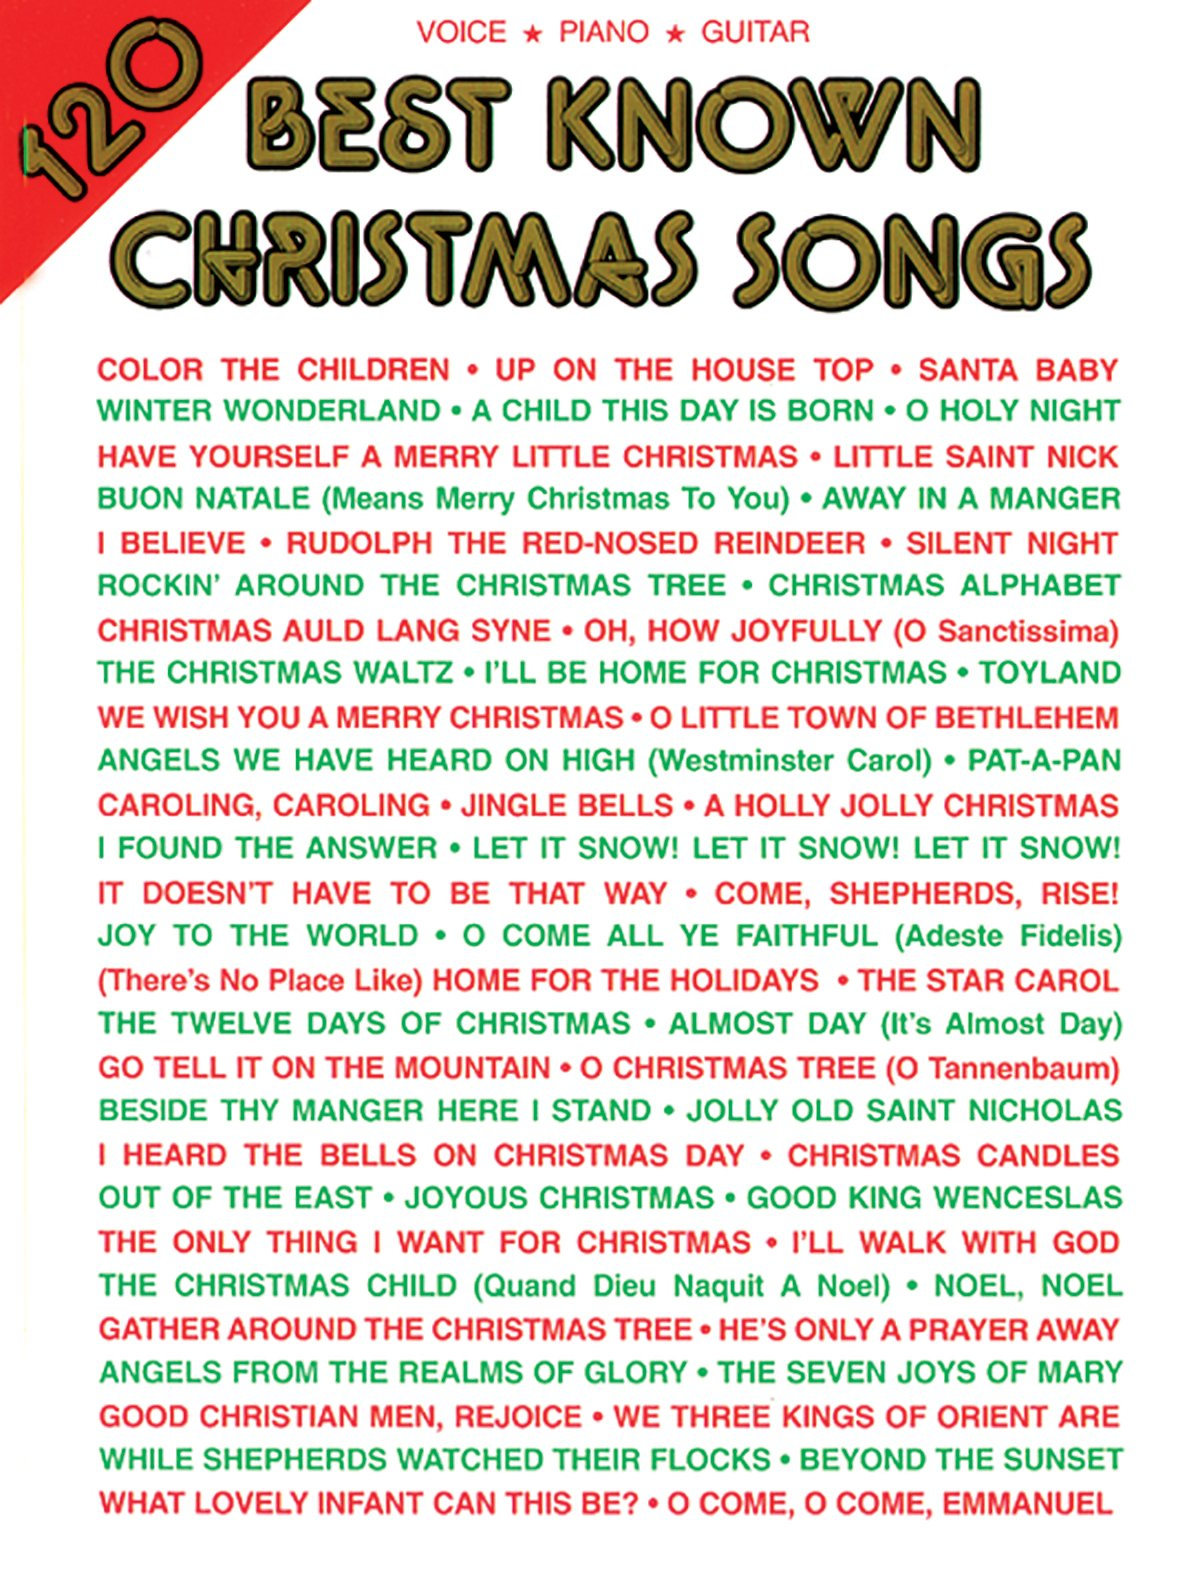 120 best known christmas songs pianovocalguitar alfred music 9781576235393 amazoncom books